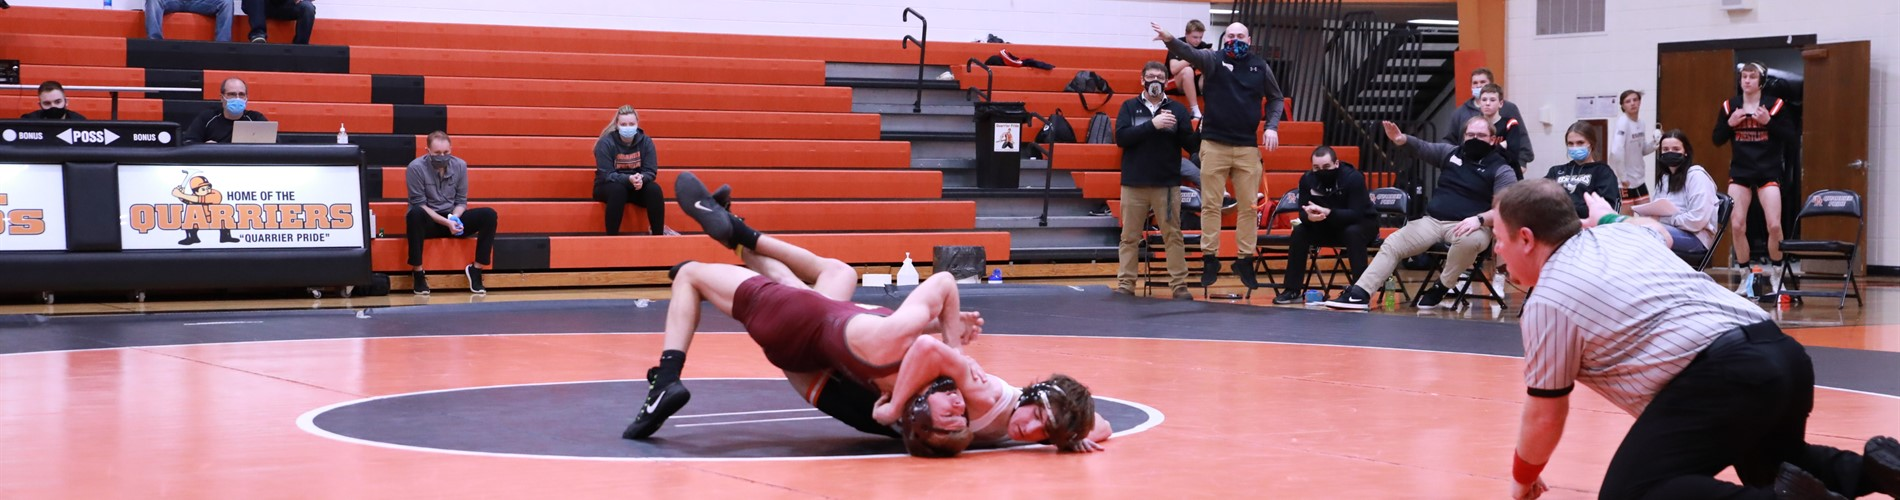 Dell Rapids Wrestling